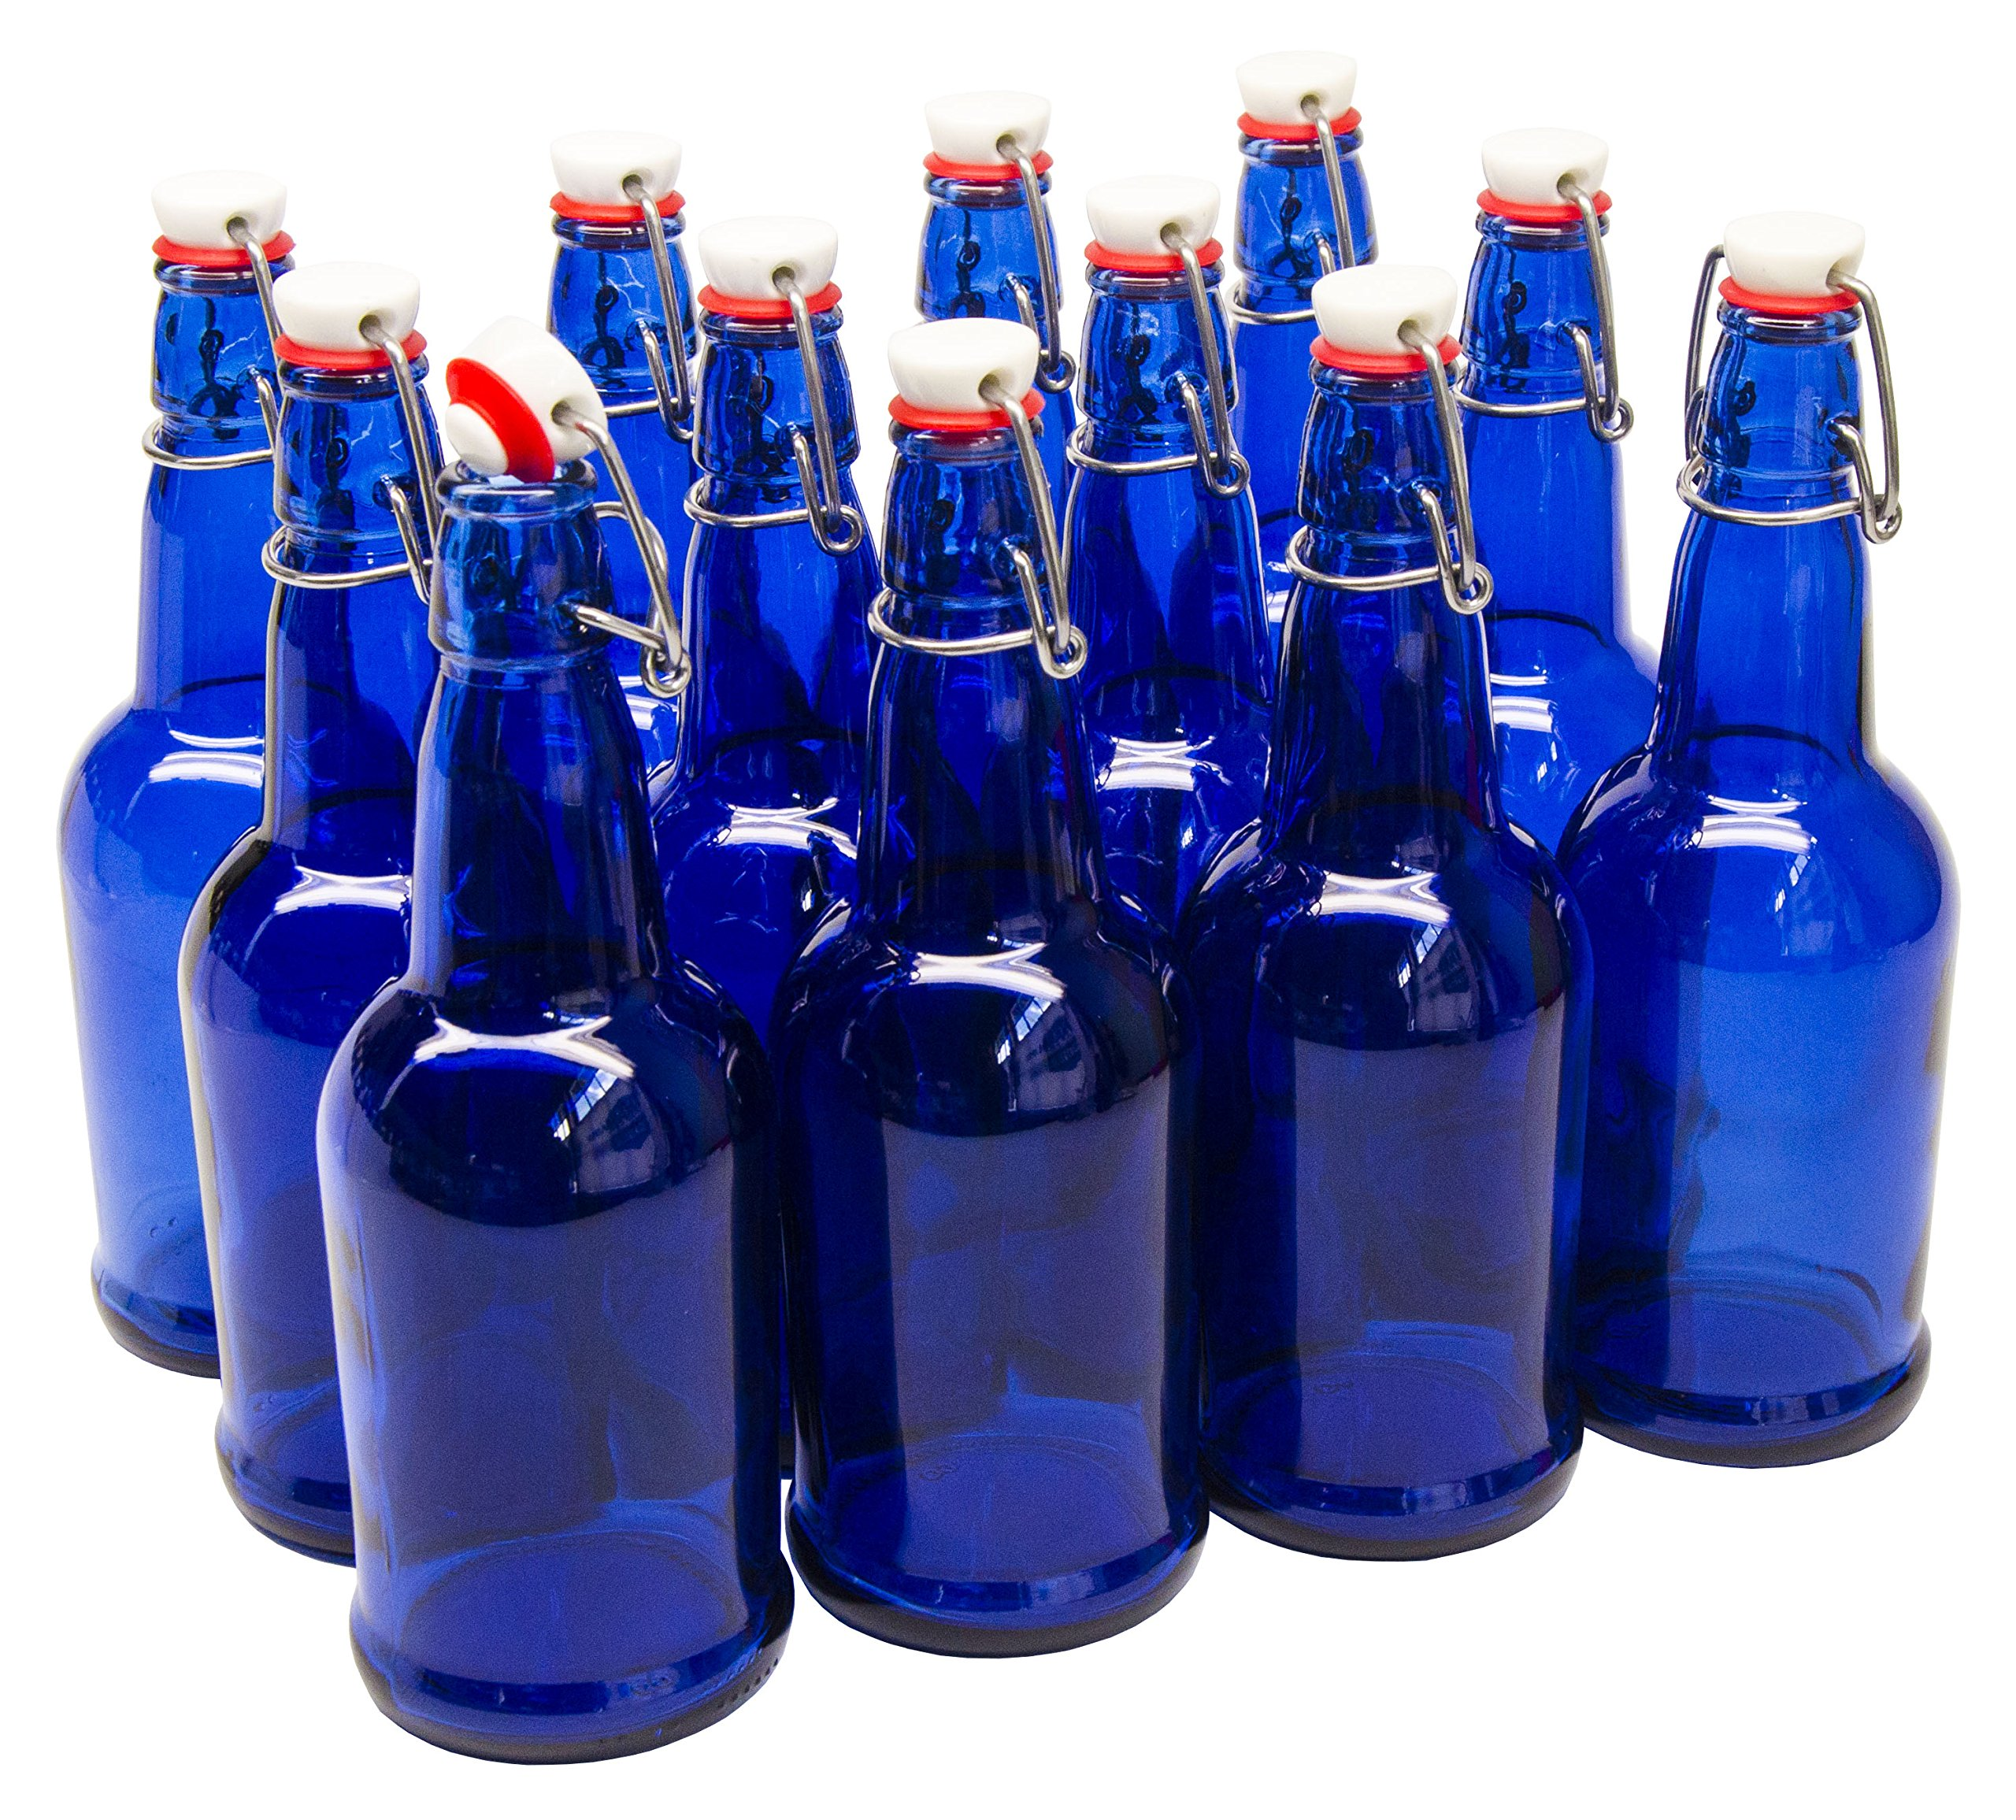 North Mountain Supply 16 oz Cobalt Blue Coated Glass Grolsch-Style Beer Brewing Fermenting Bottles - with Ceramic Swing Top Caps - Case of 12 by North Mountain Supply